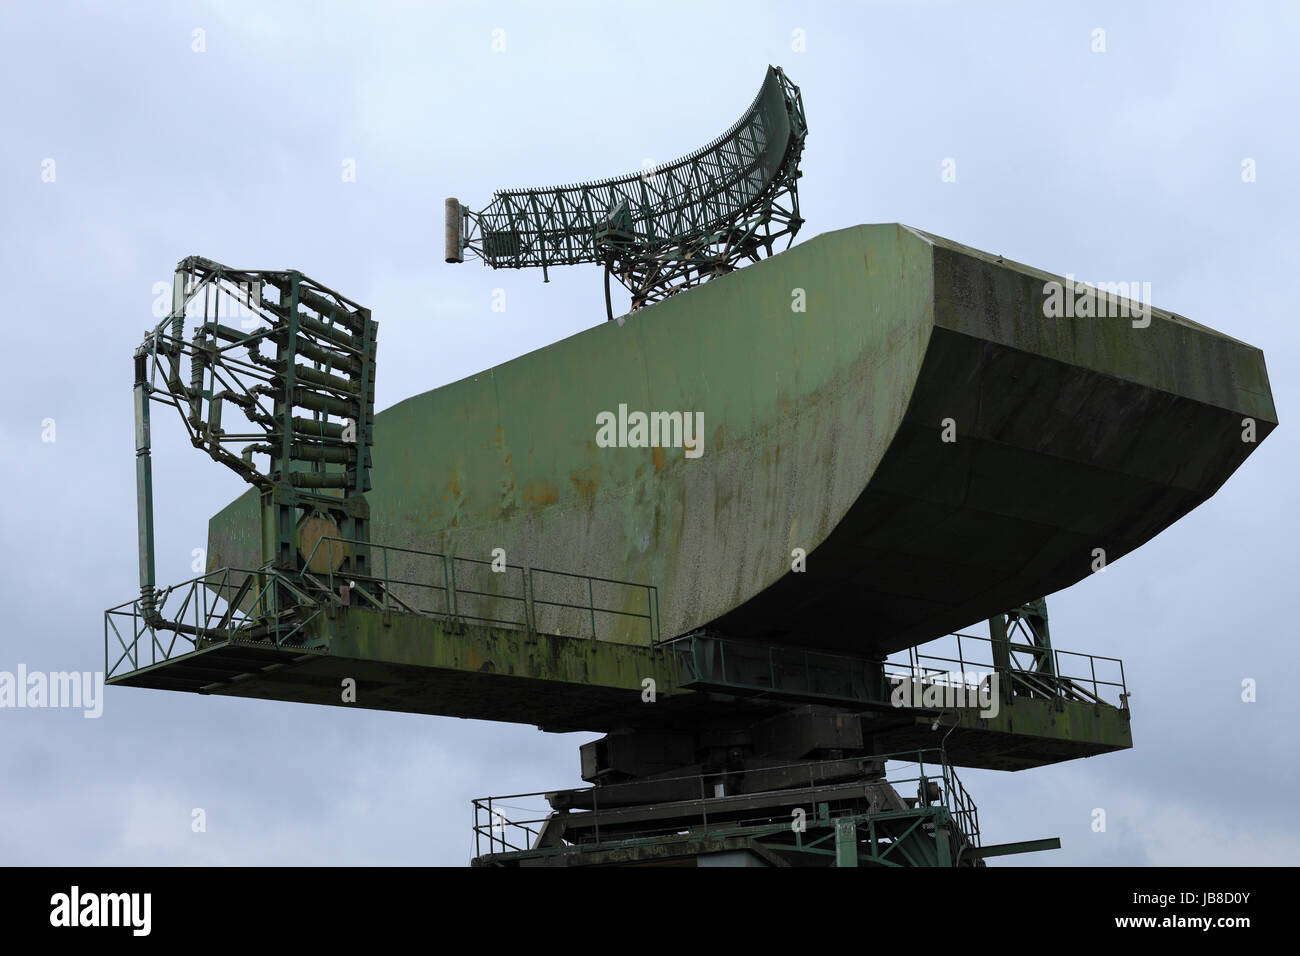 RADAR at RAF Neathishead. Stock Photo